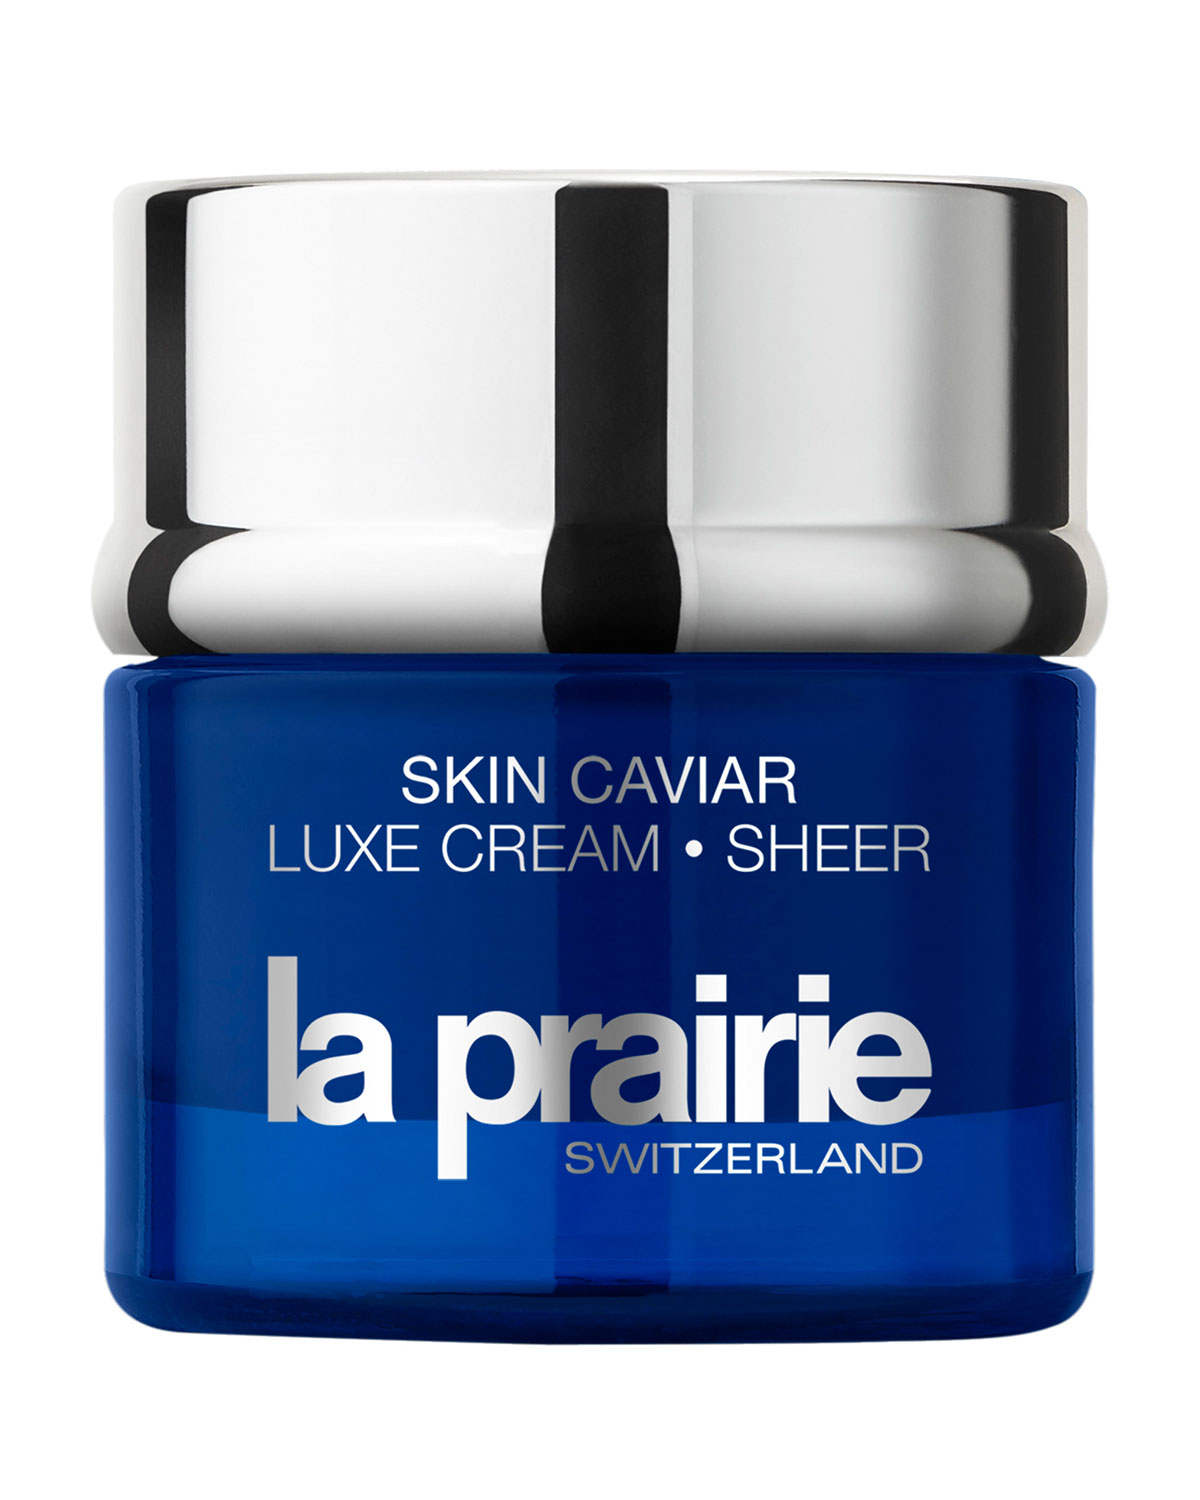 Skin Caviar Luxe Cream Sheer, 3.4 oz./ 100 mL